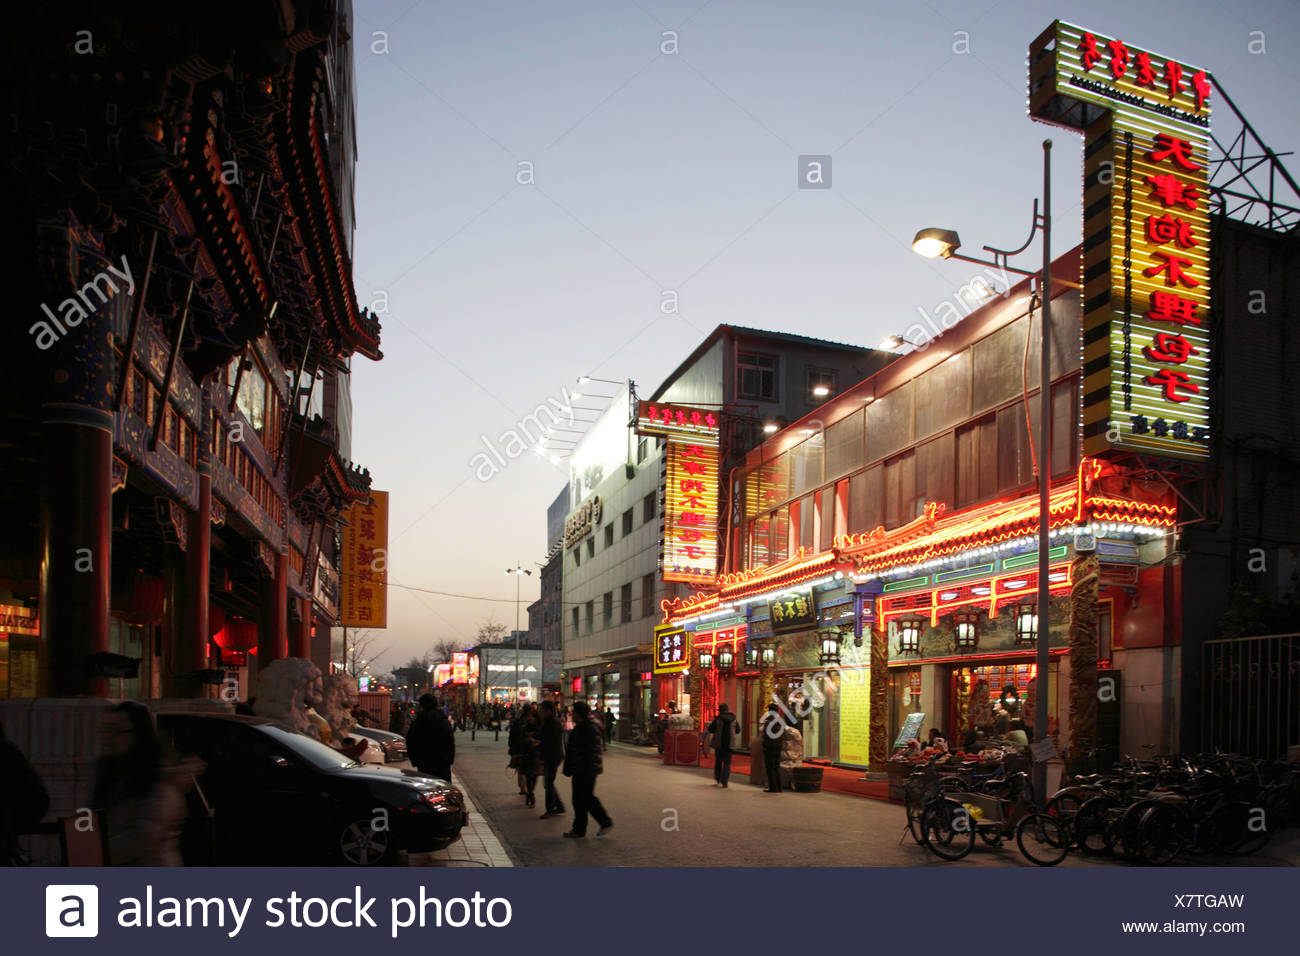 The night view of the famous Gou Bu li aka Go Believe steamed stuffed bun restaurant in Wang Fu Jing shopping district  Beijing - Stock Image